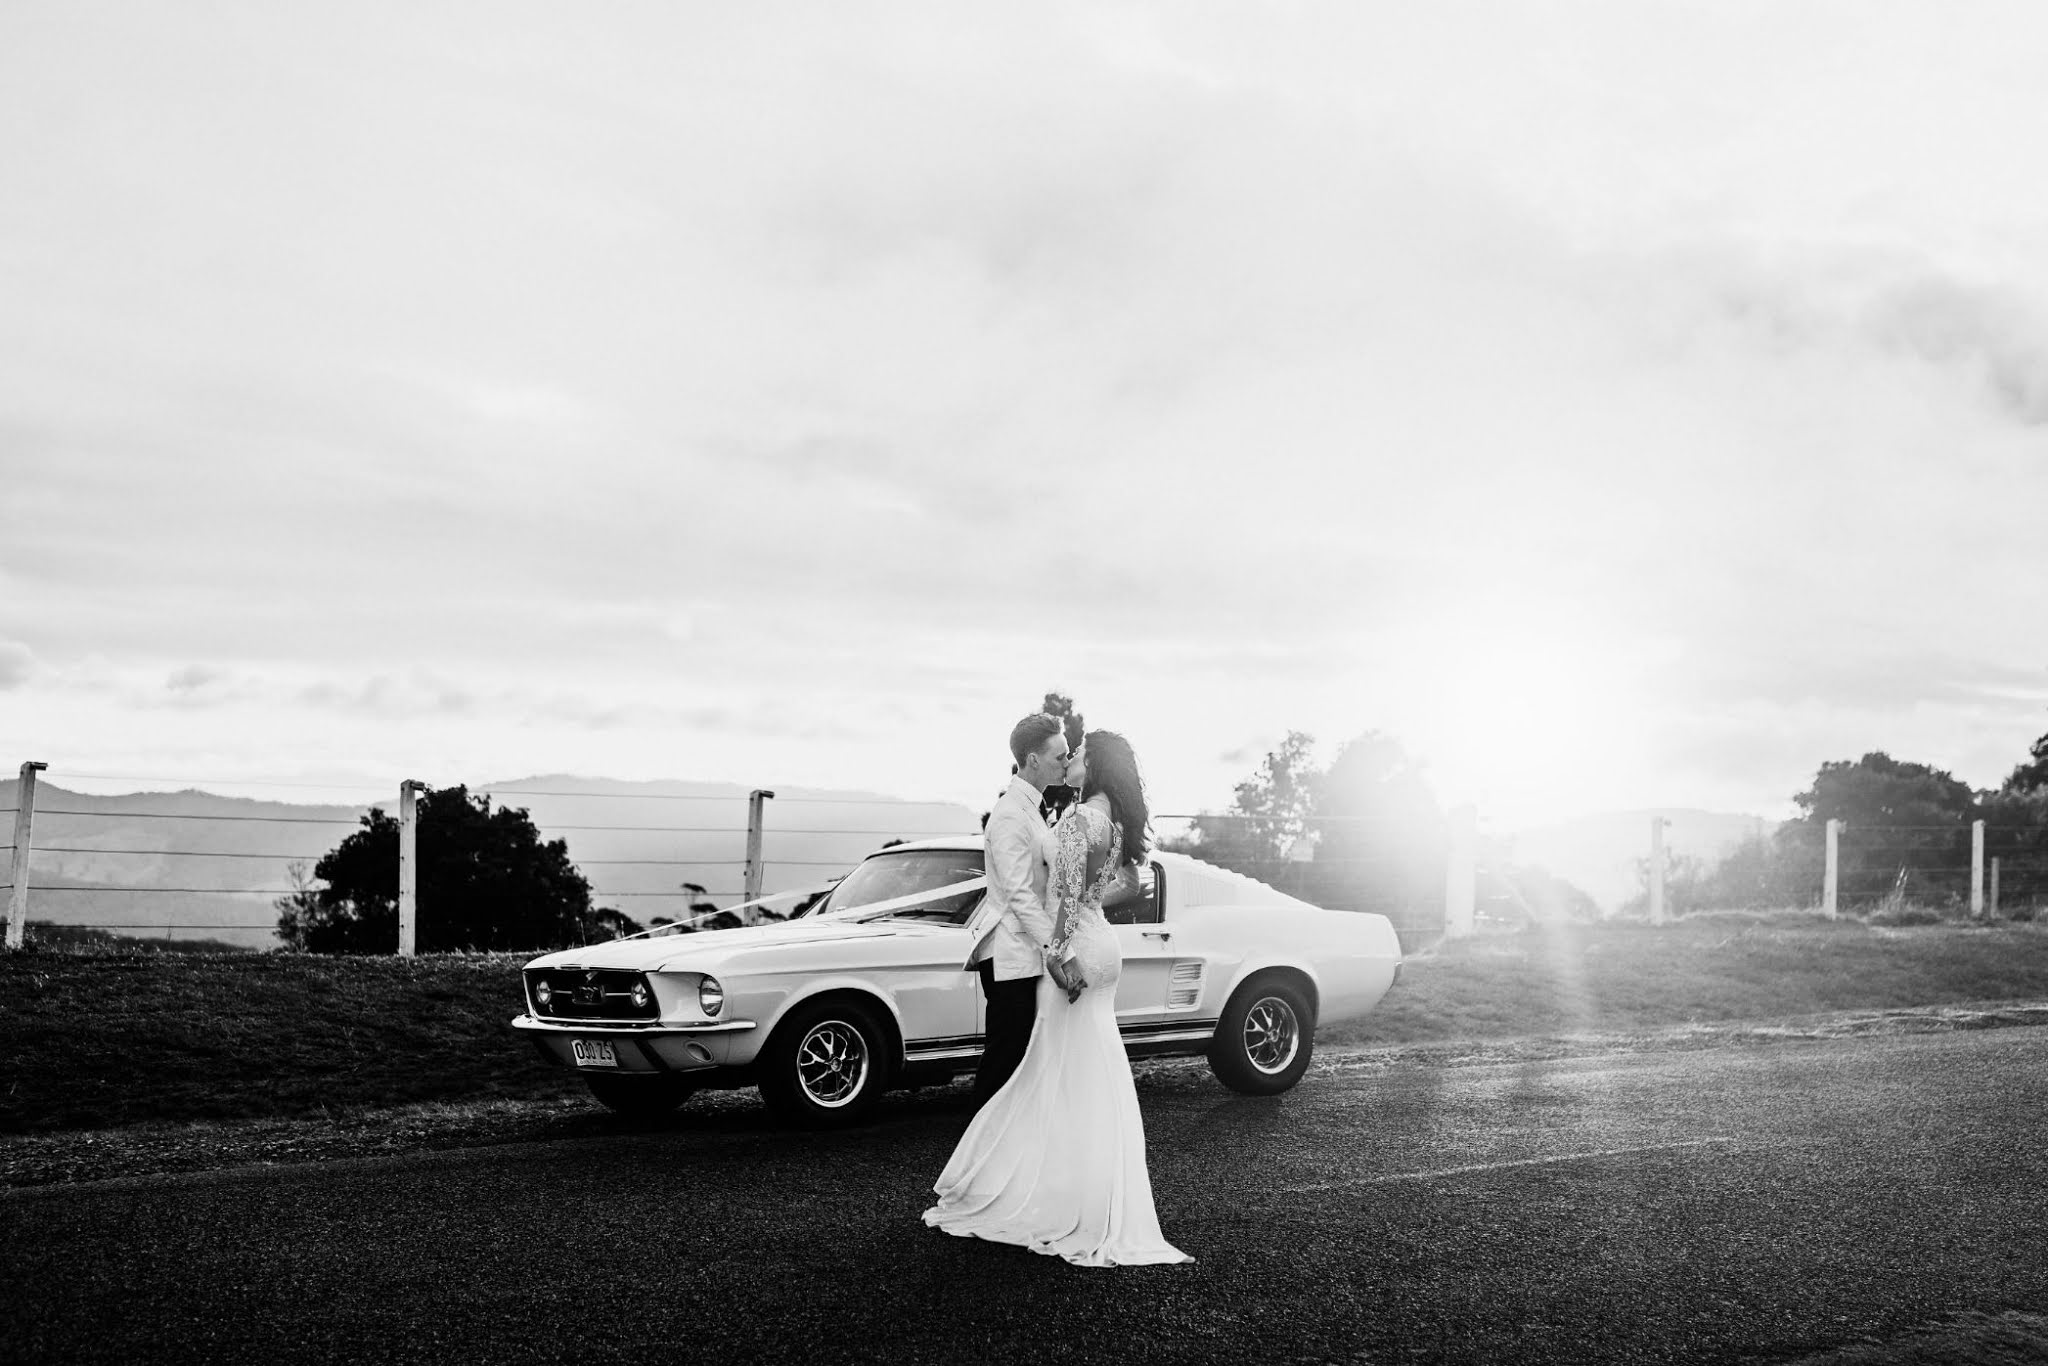 a'daw photography weddings bridal gowns florals moss & stone groom suit venue